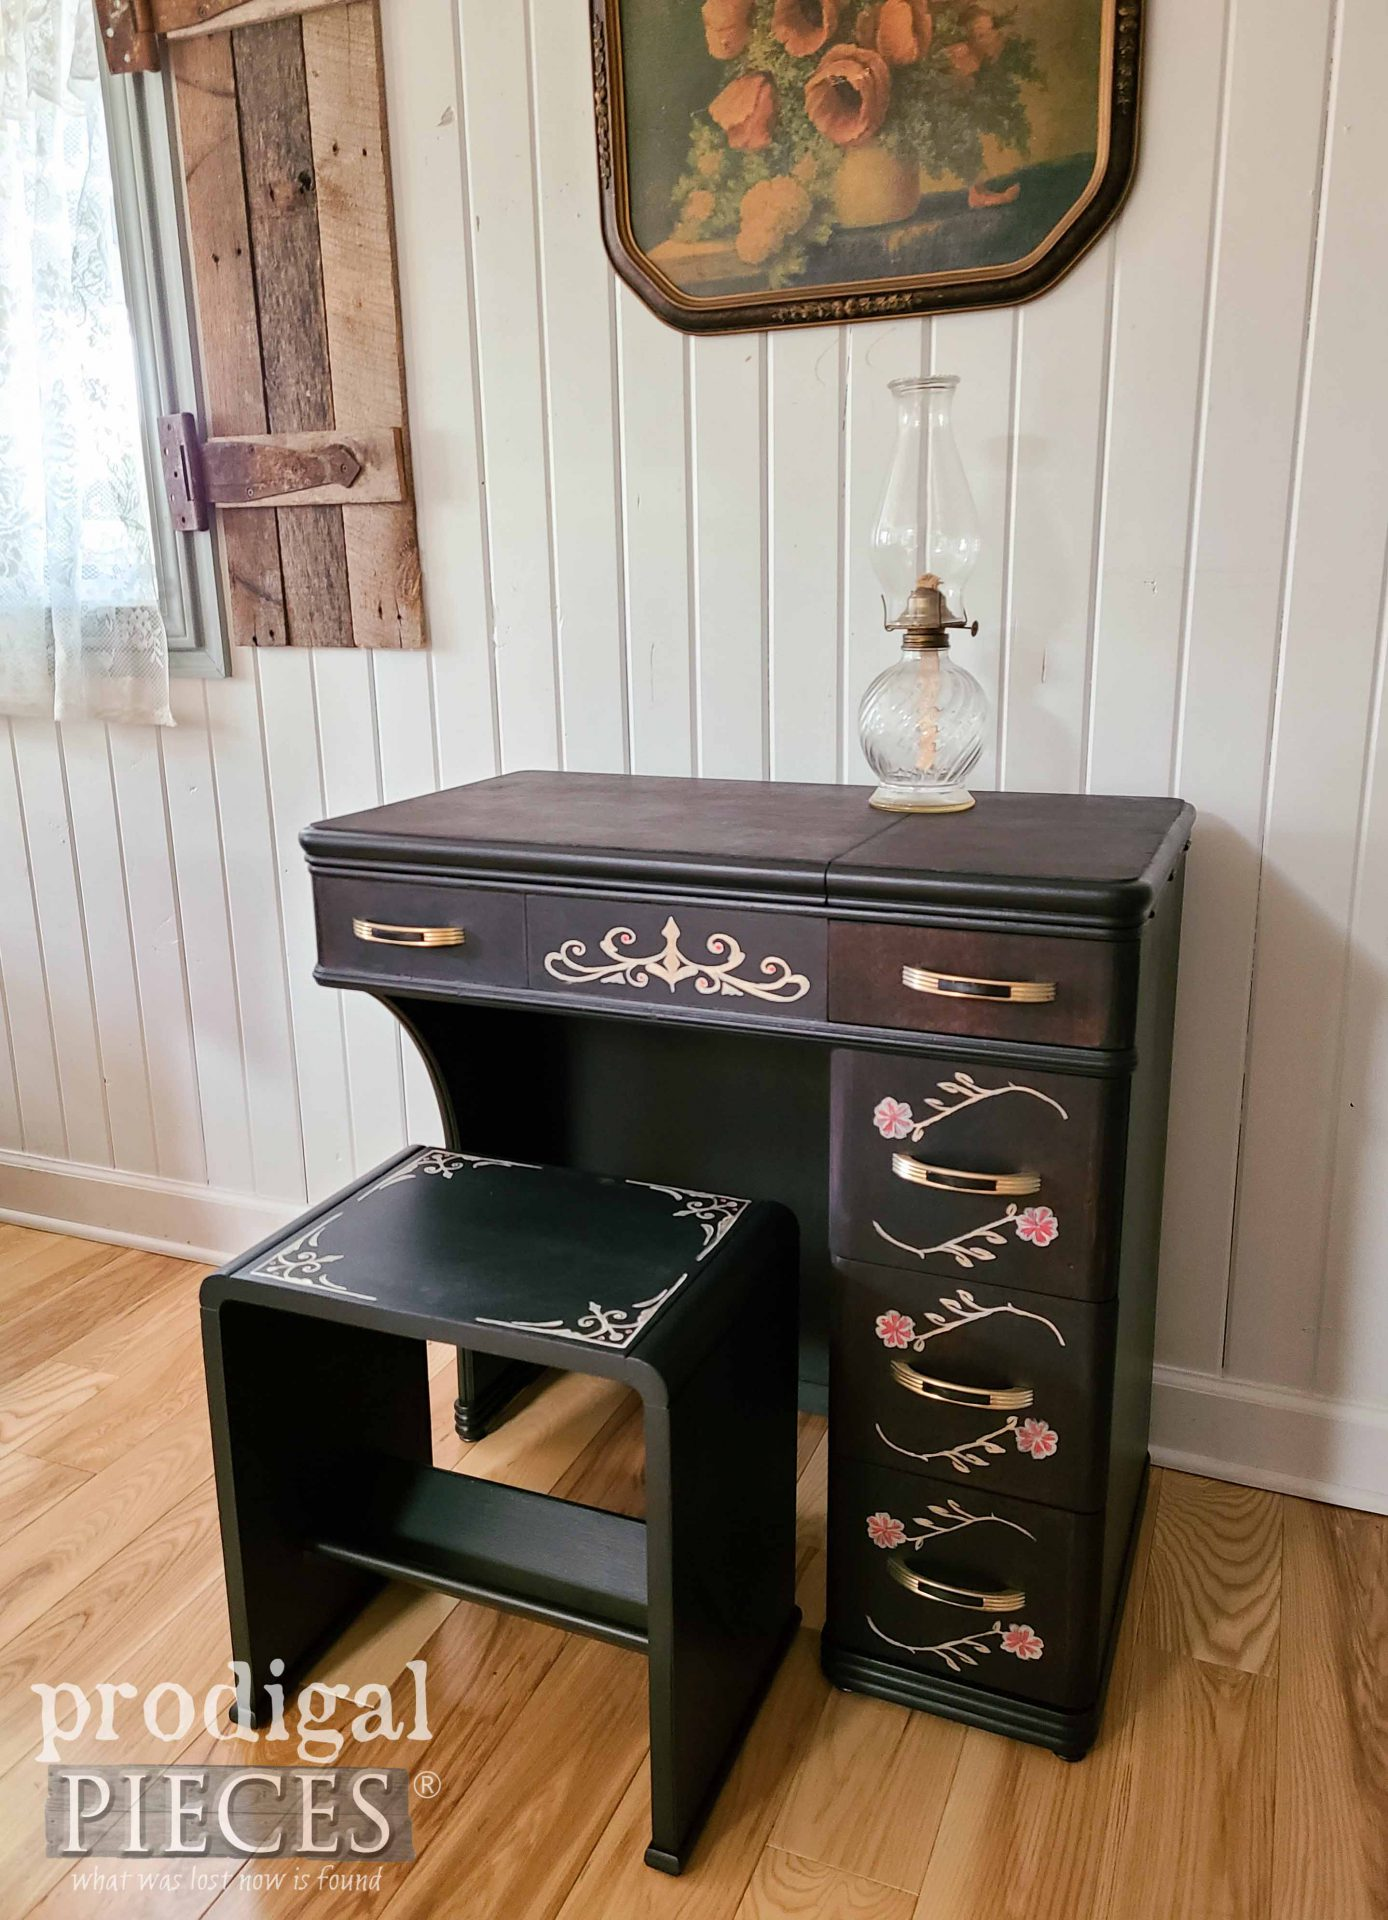 Vintage Sewing Desk with Hand-Painted Details by Larissa of Prodigal Pieces | prodigalpieces.com #prodigalpieces #diy #furntirue #sewing